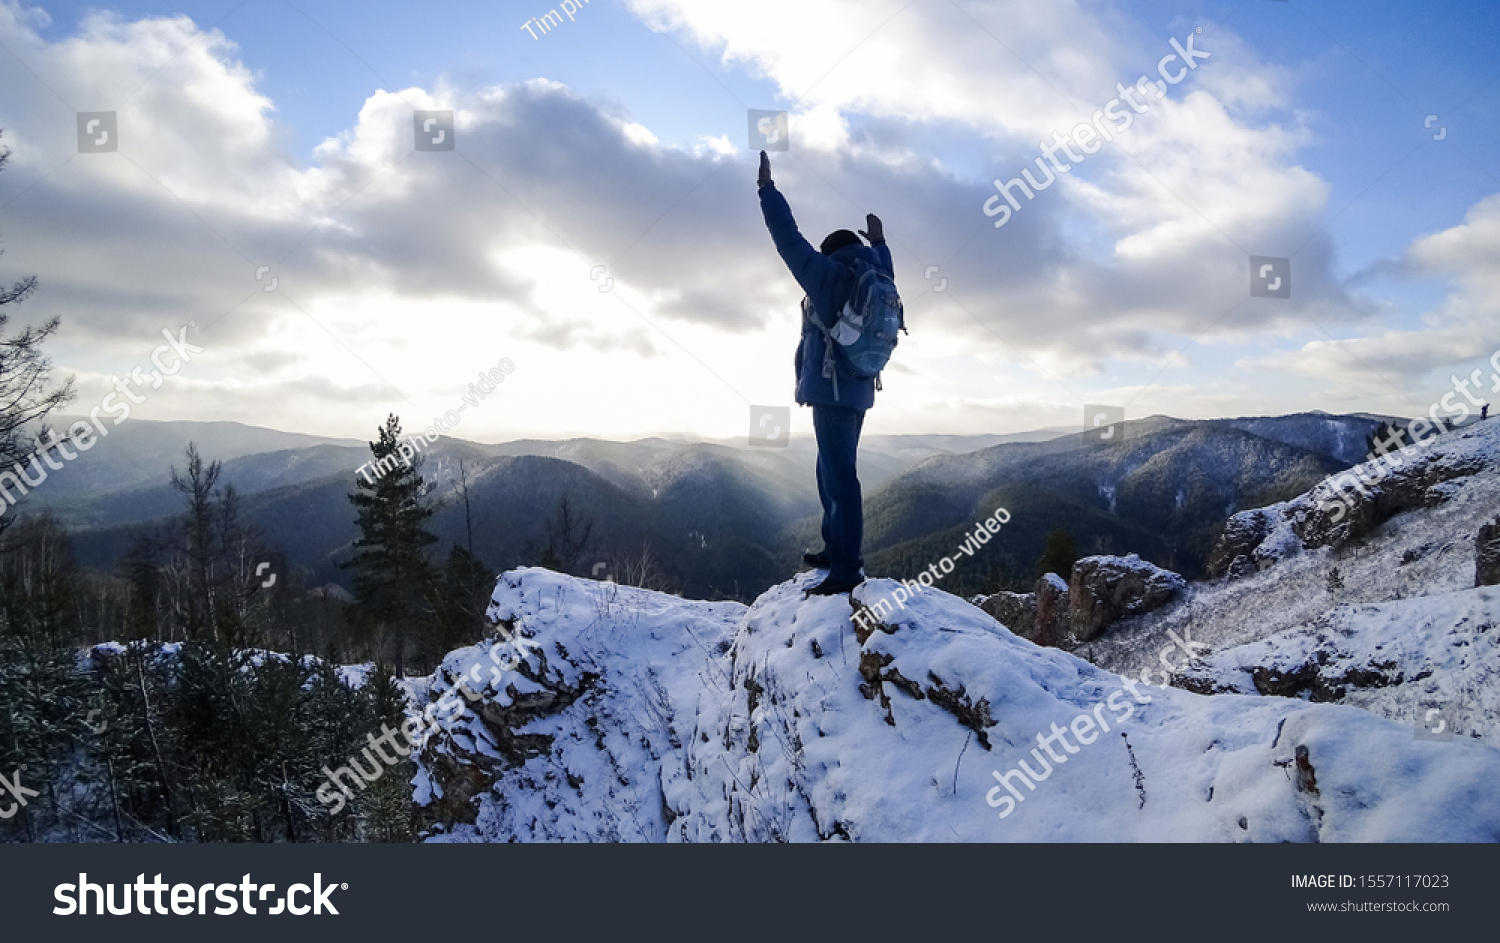 stock-photo-man-on-top-of-the-cliff-rais